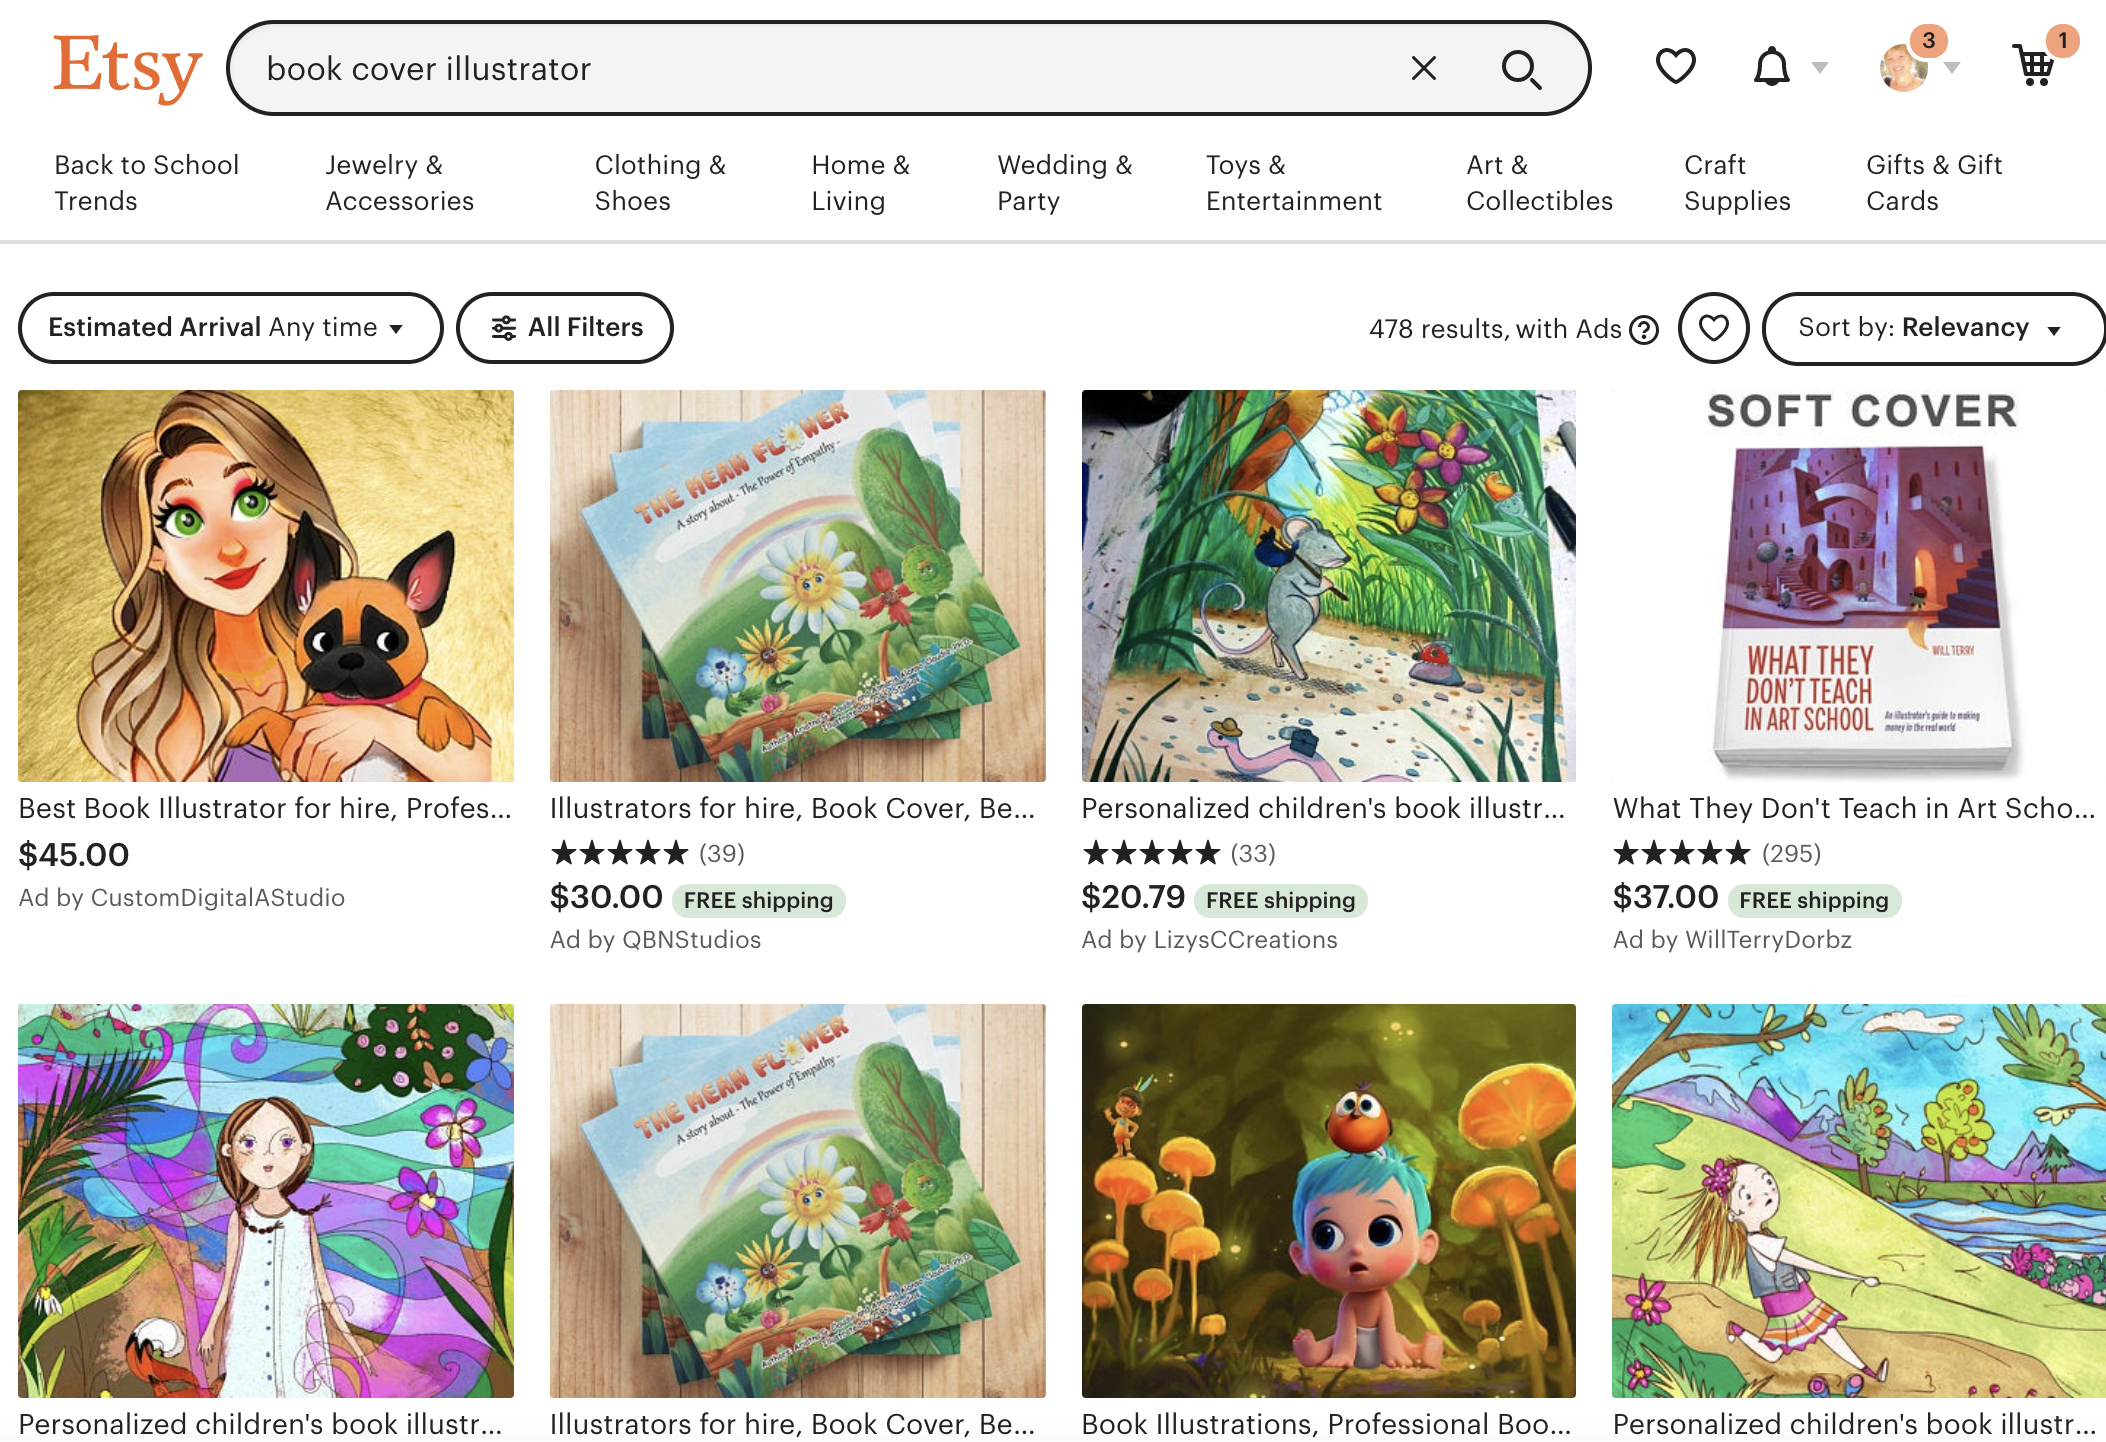 Book Cover Artists on Etsy